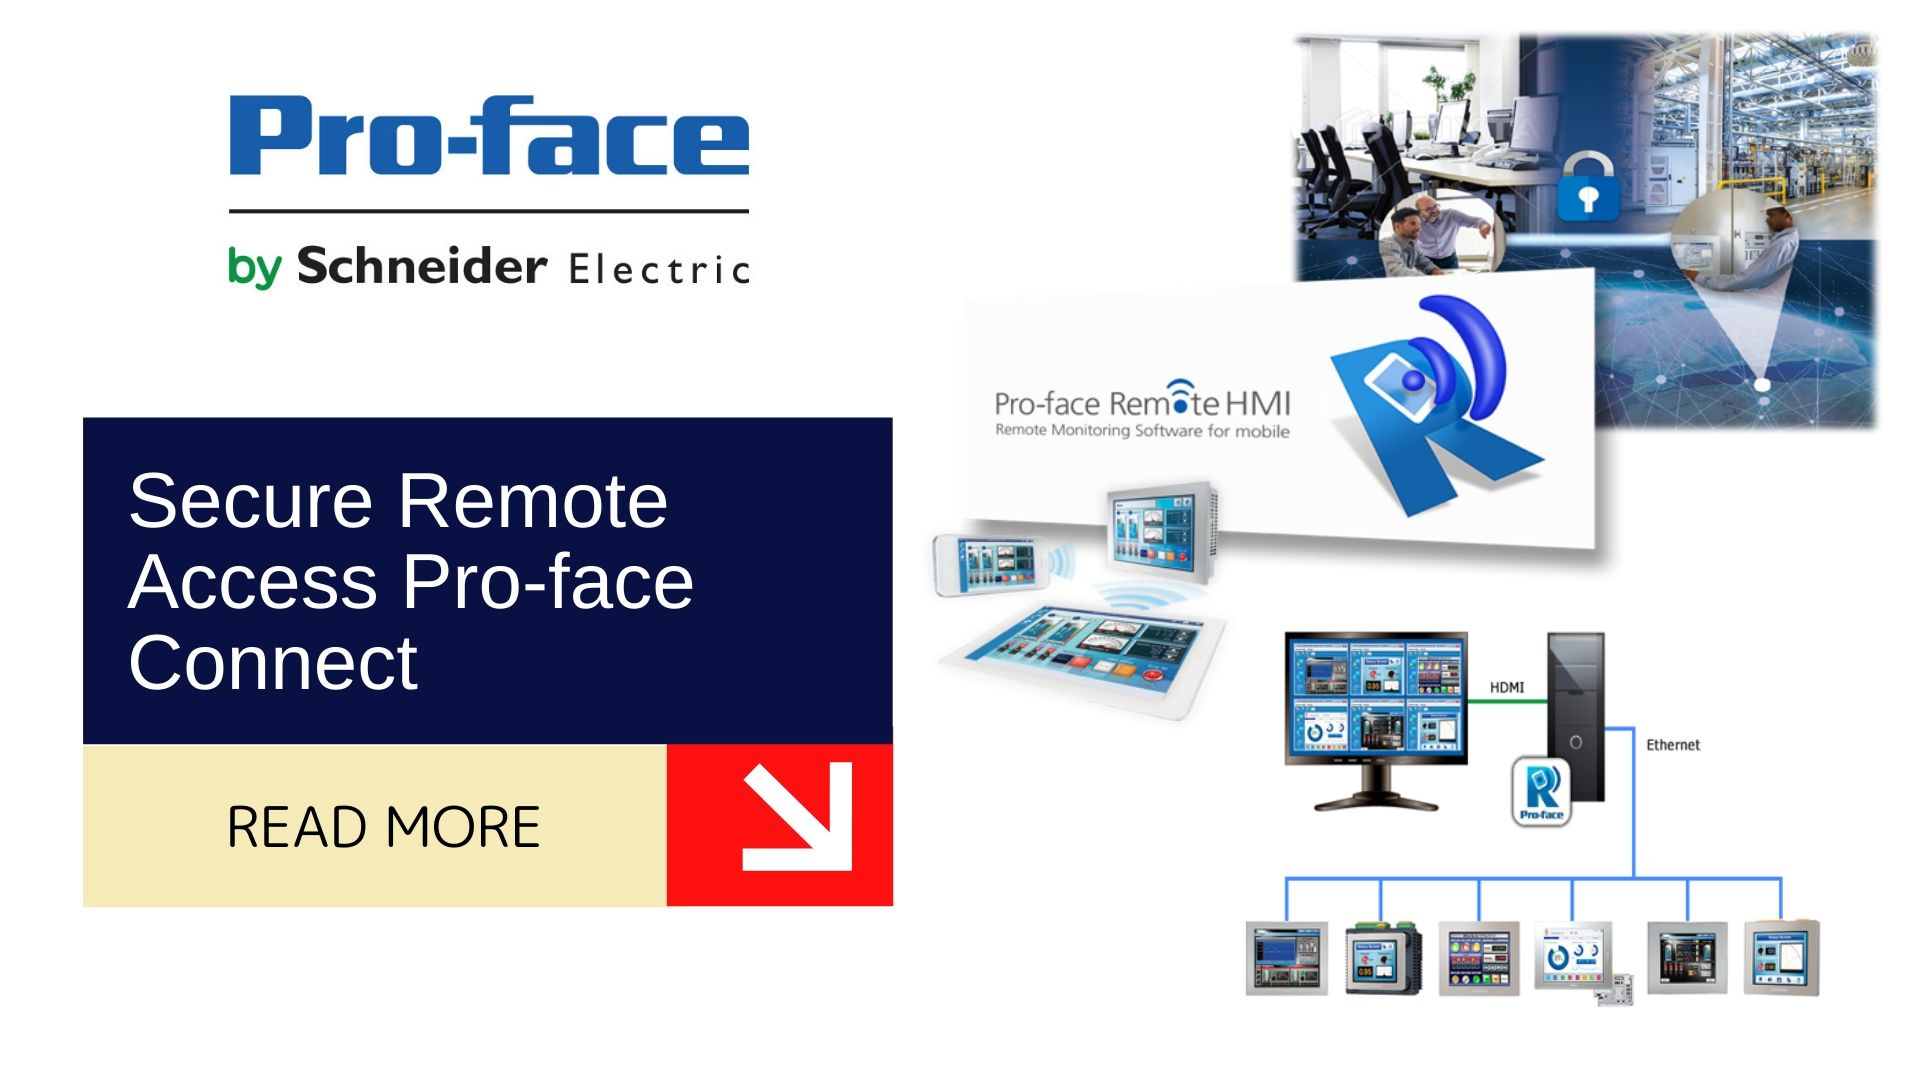 Secure Remote Access Pro-face Connect 2